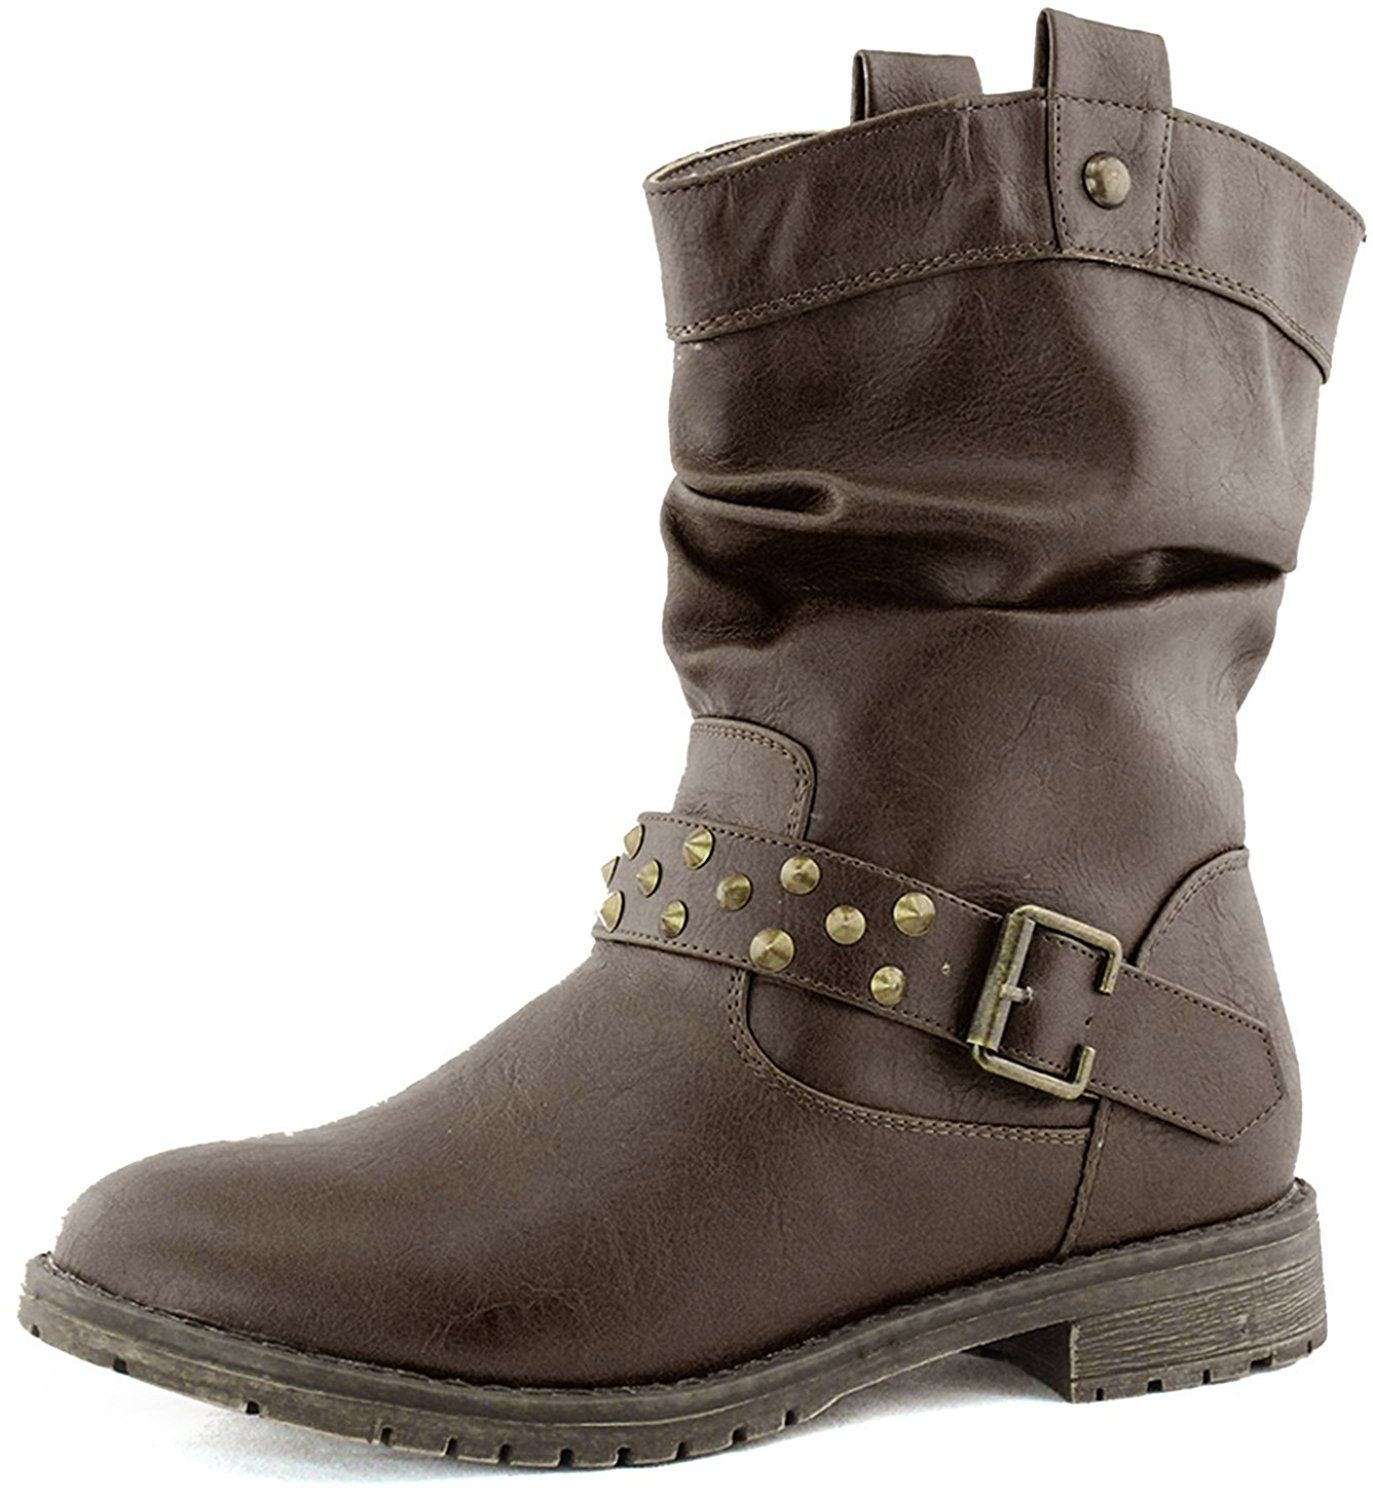 Women's Western Slouch Cowboy Ankle Strap Studded Booties Military Combat Boots Fashion Shoes